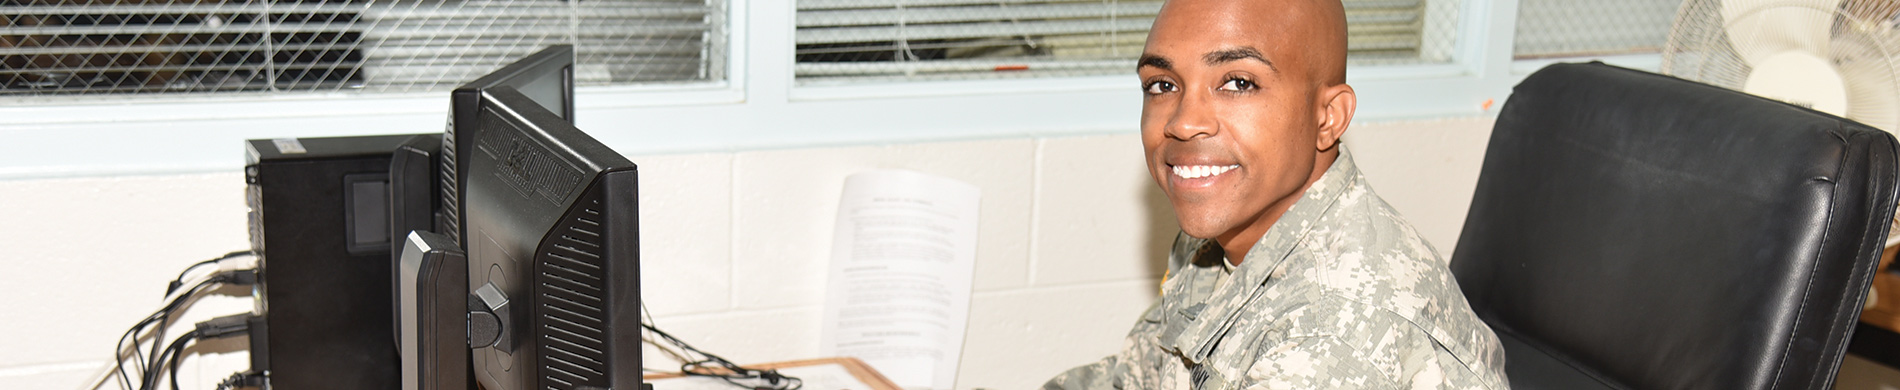 Student dressed in military fatigues sitting at computer